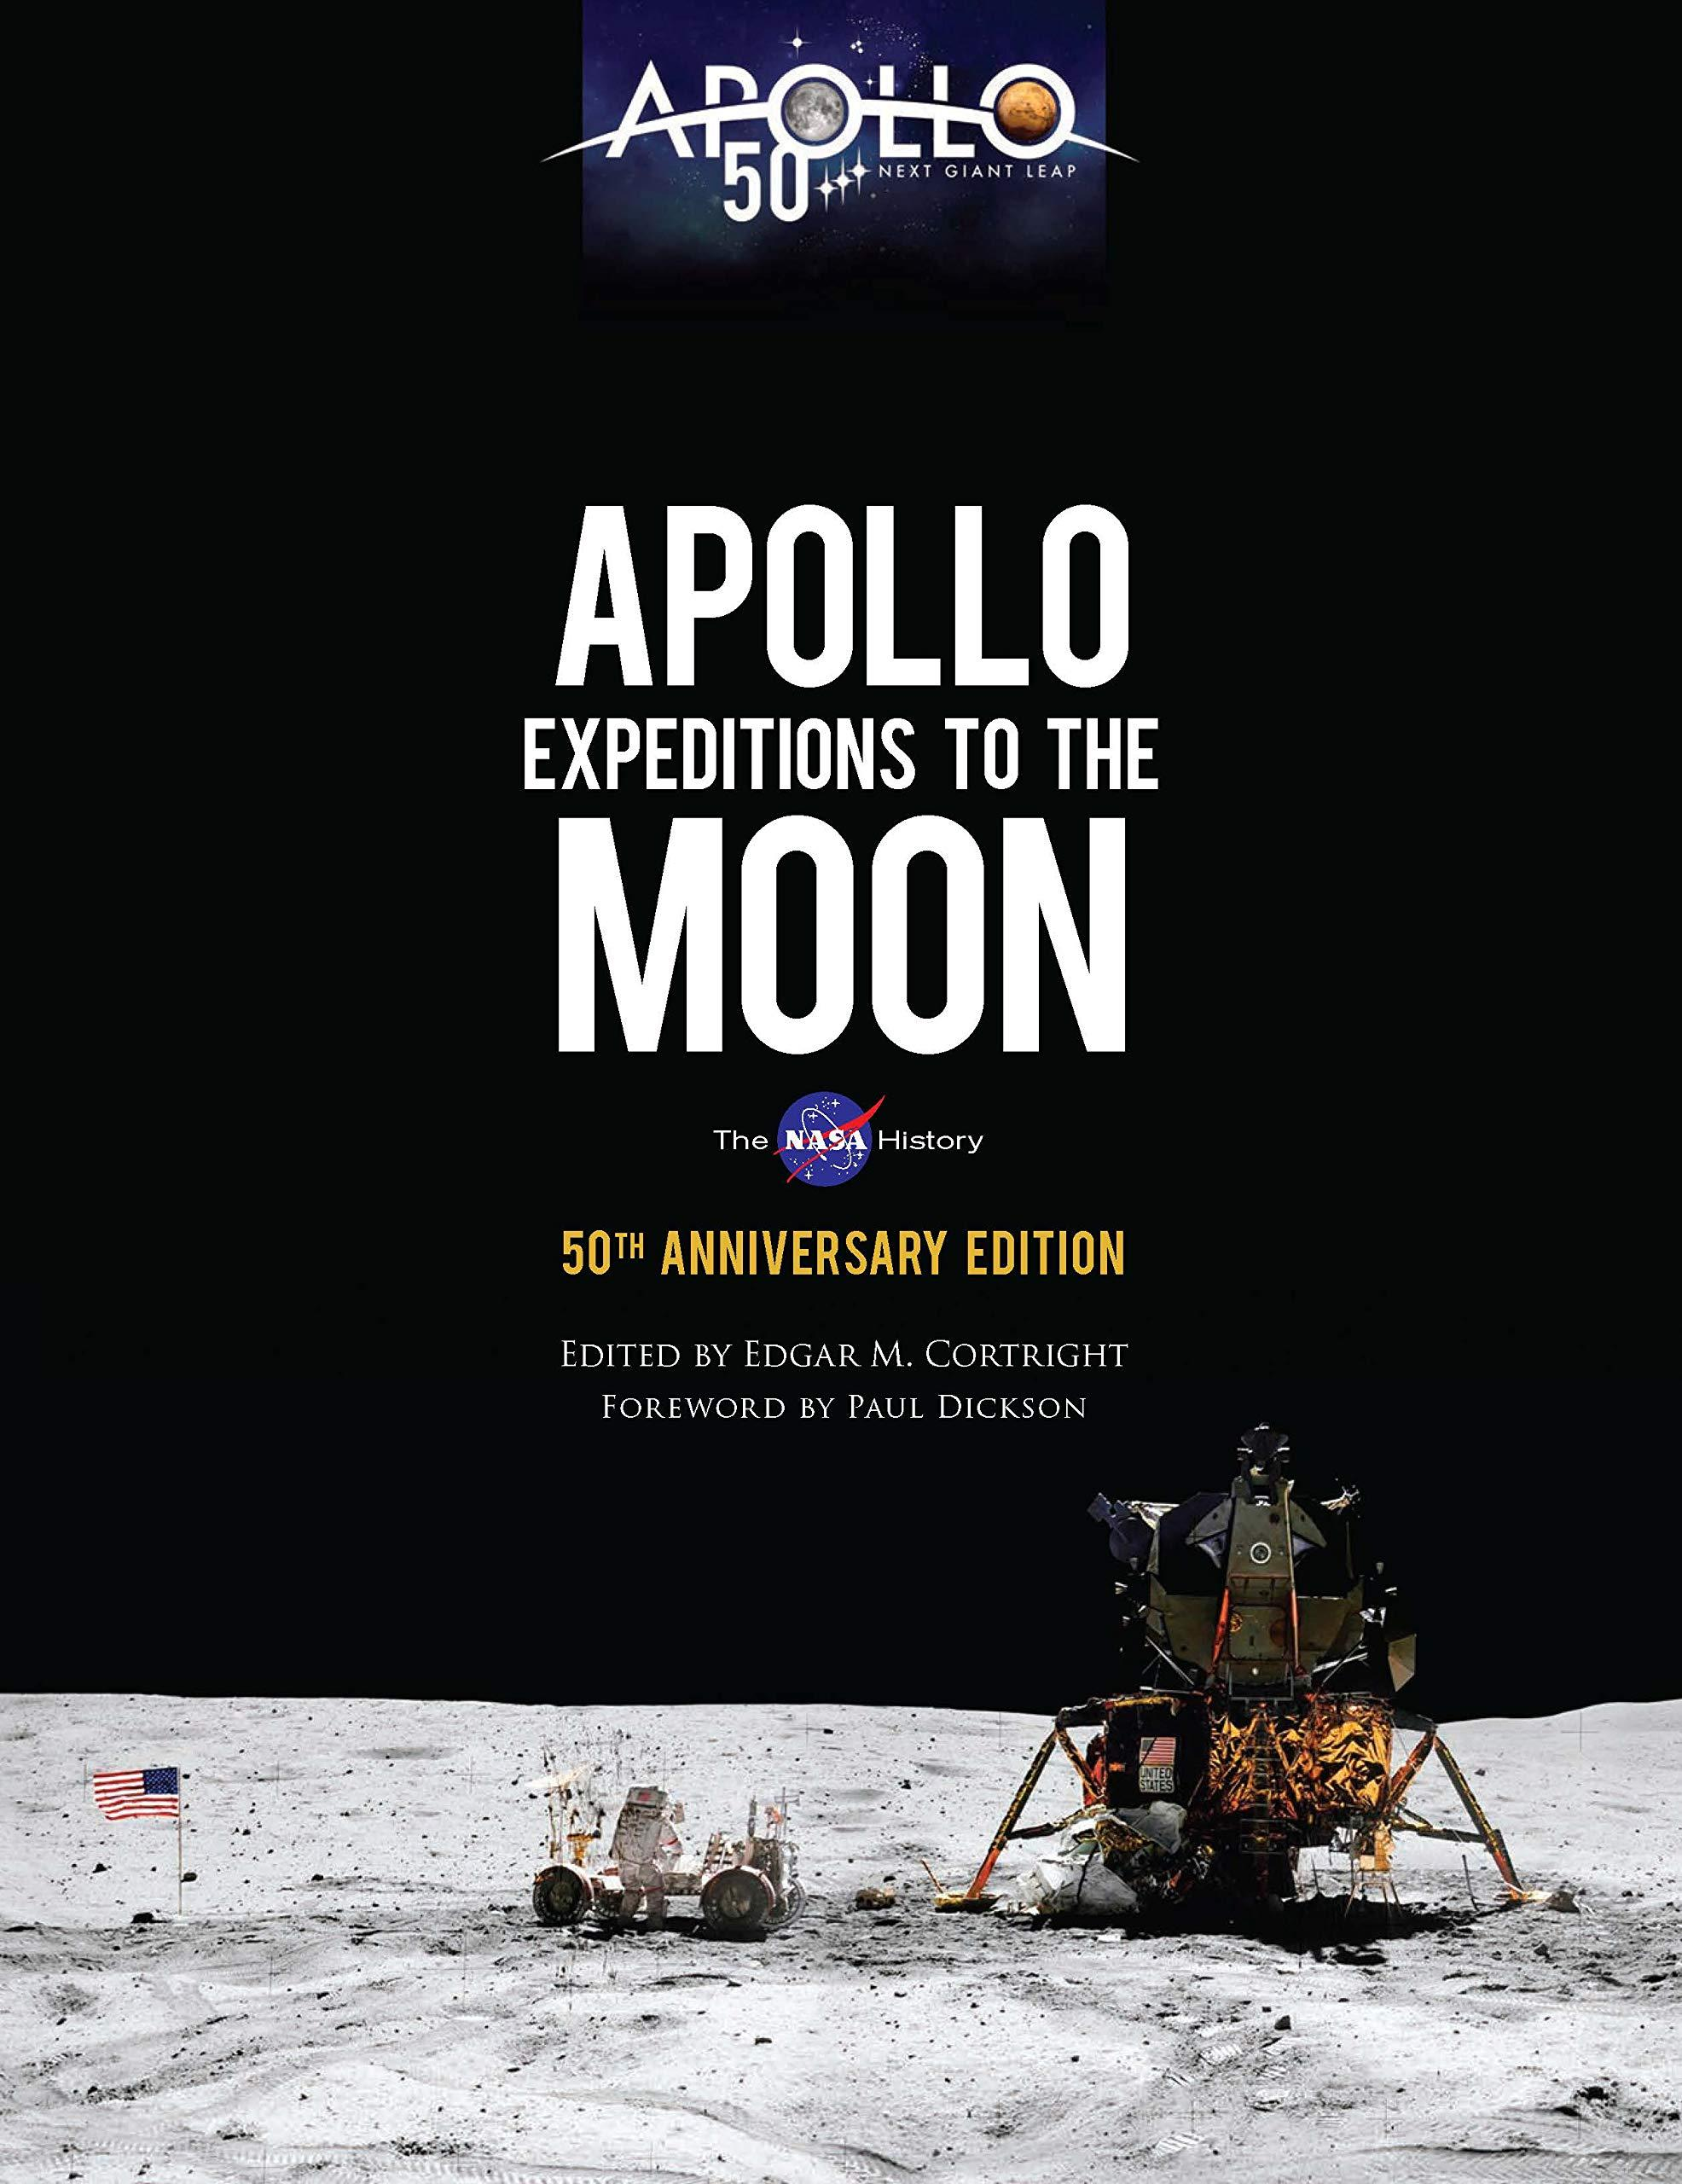 Apollo Expeditions to the Moon - Edgar Cortright